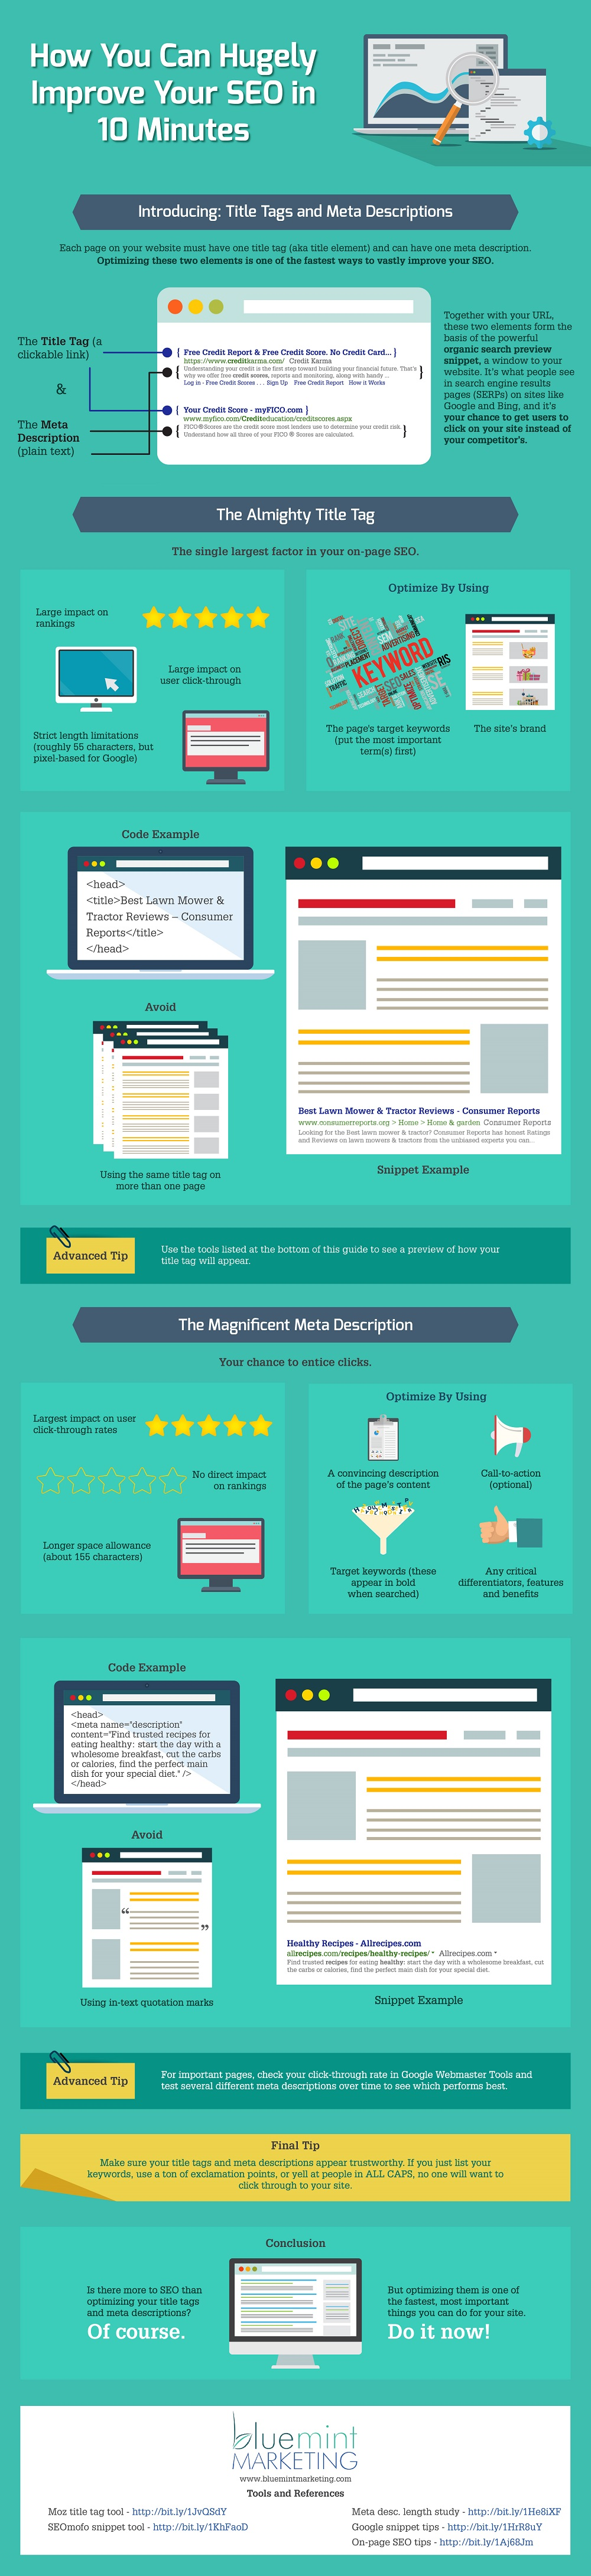 hugely-improve-your-seo-infographic.jpg